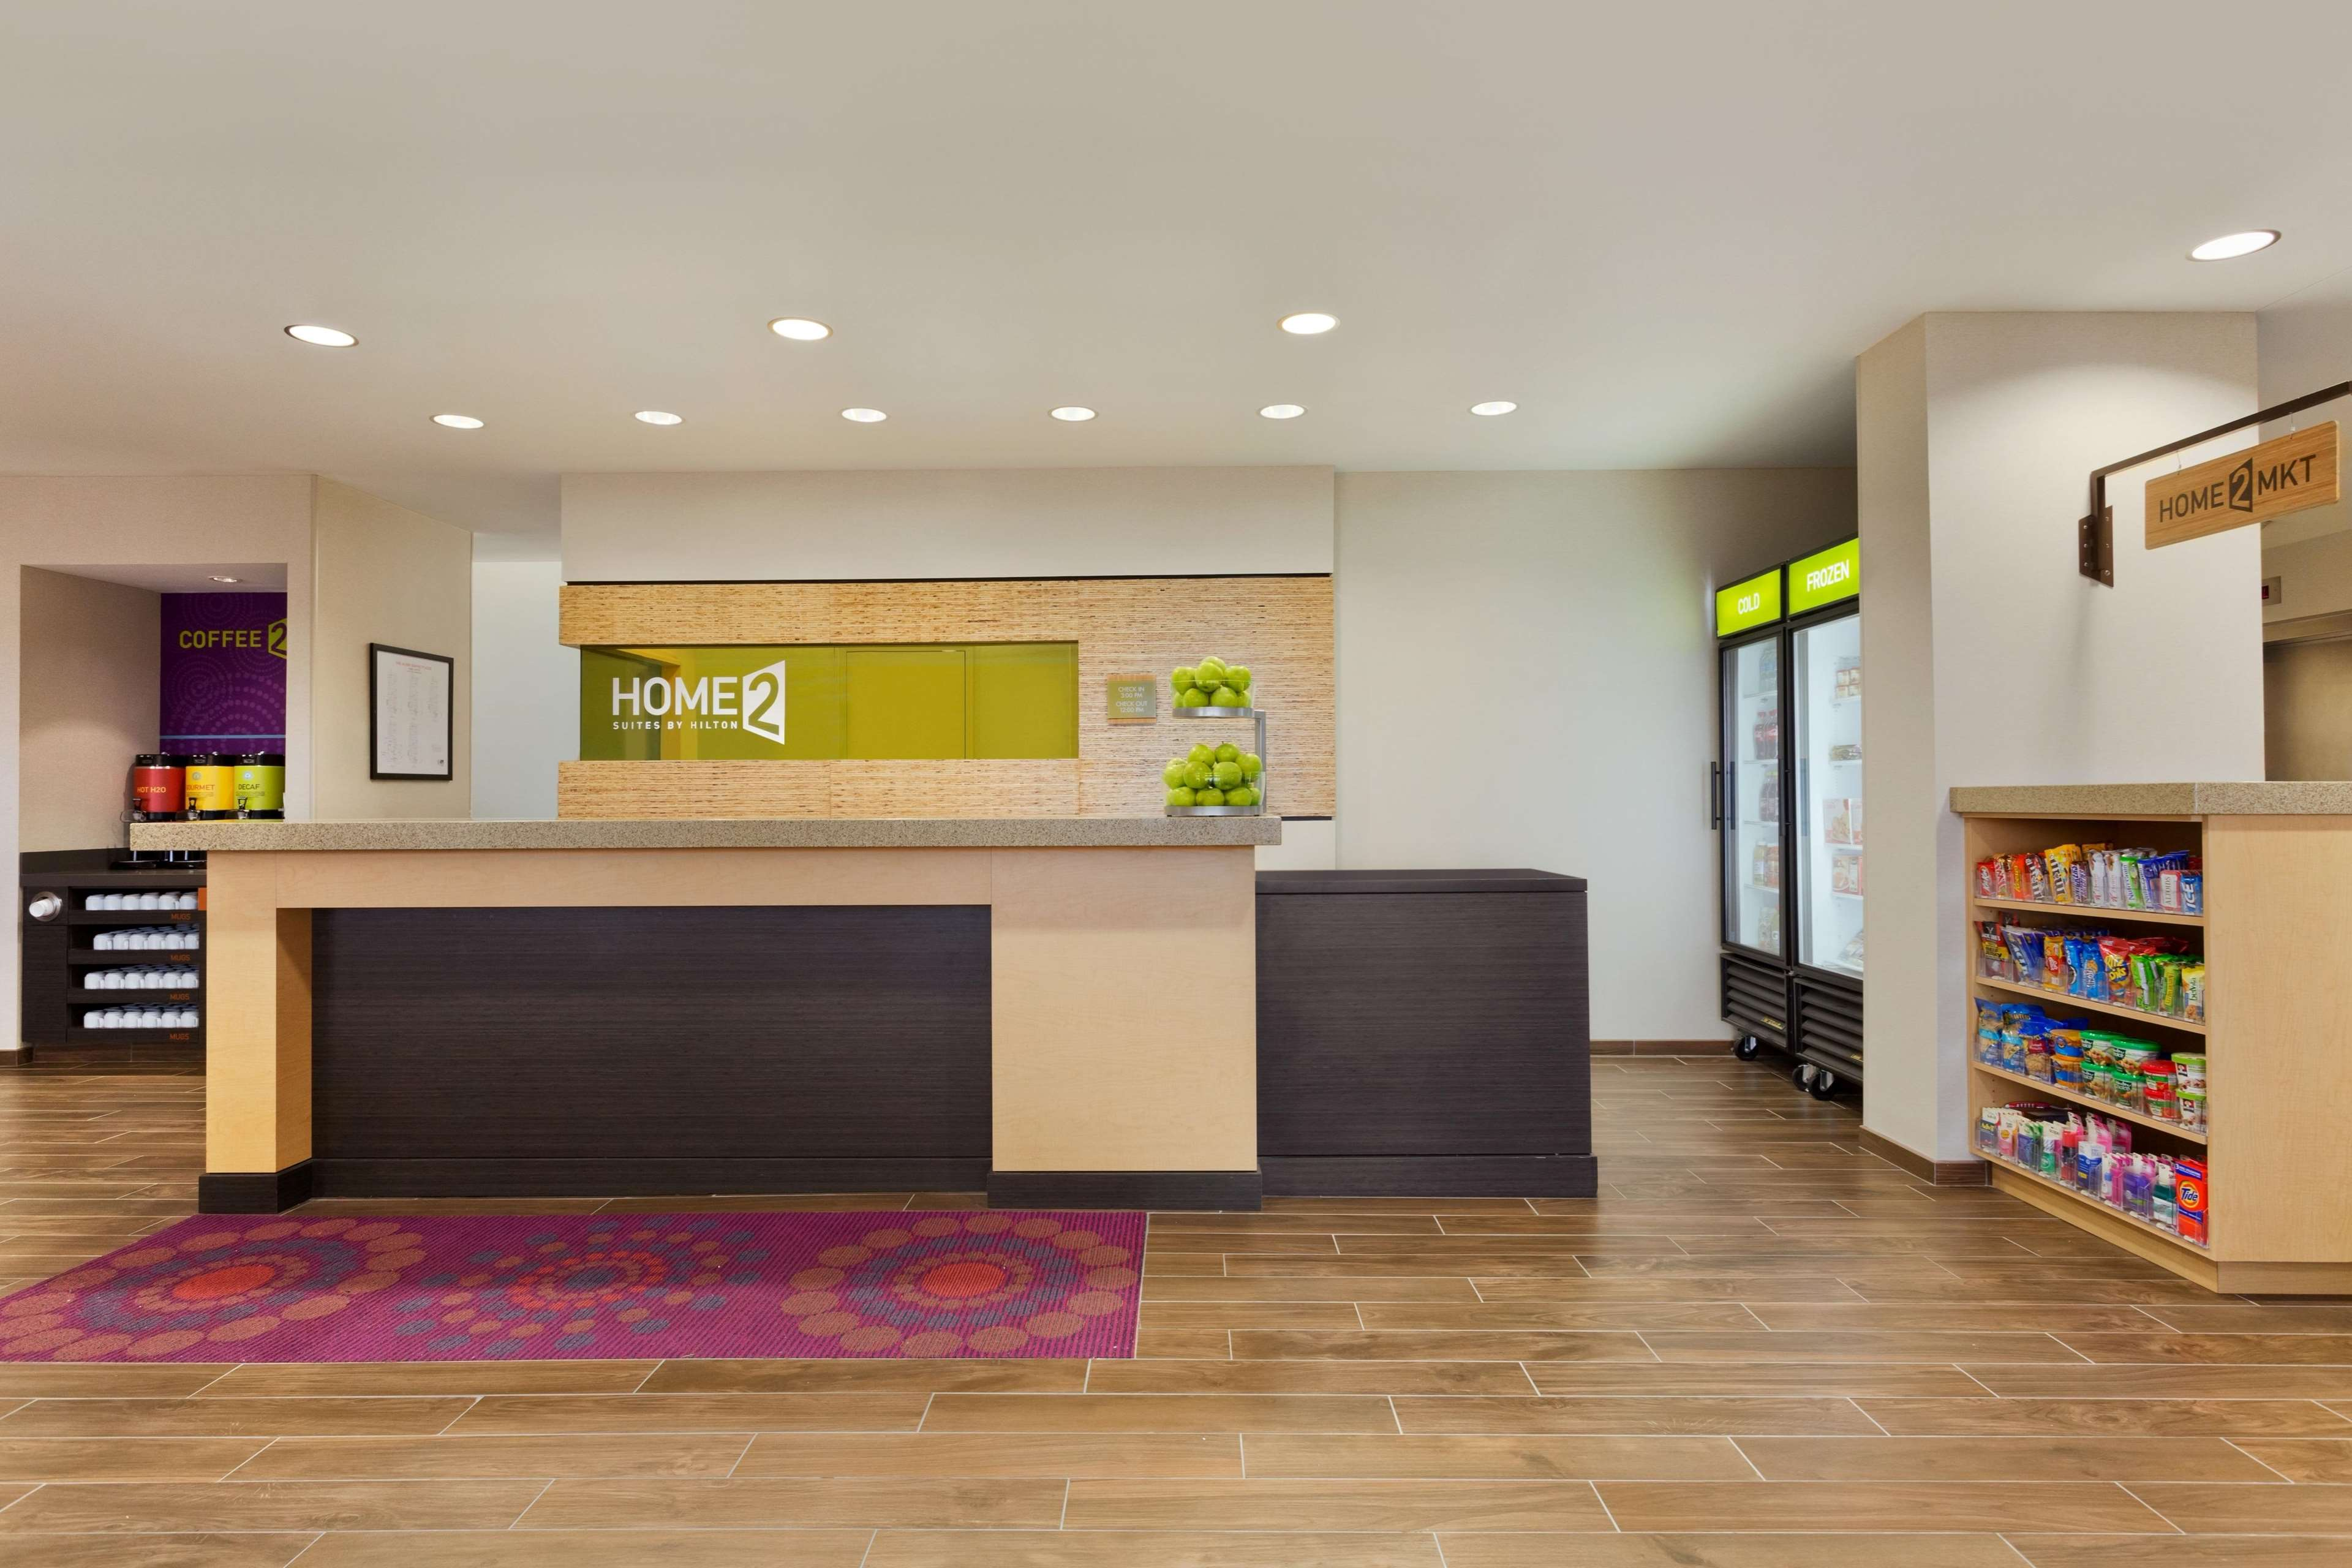 Home2 Suites by Hilton Baltimore / Aberdeen, MD image 2